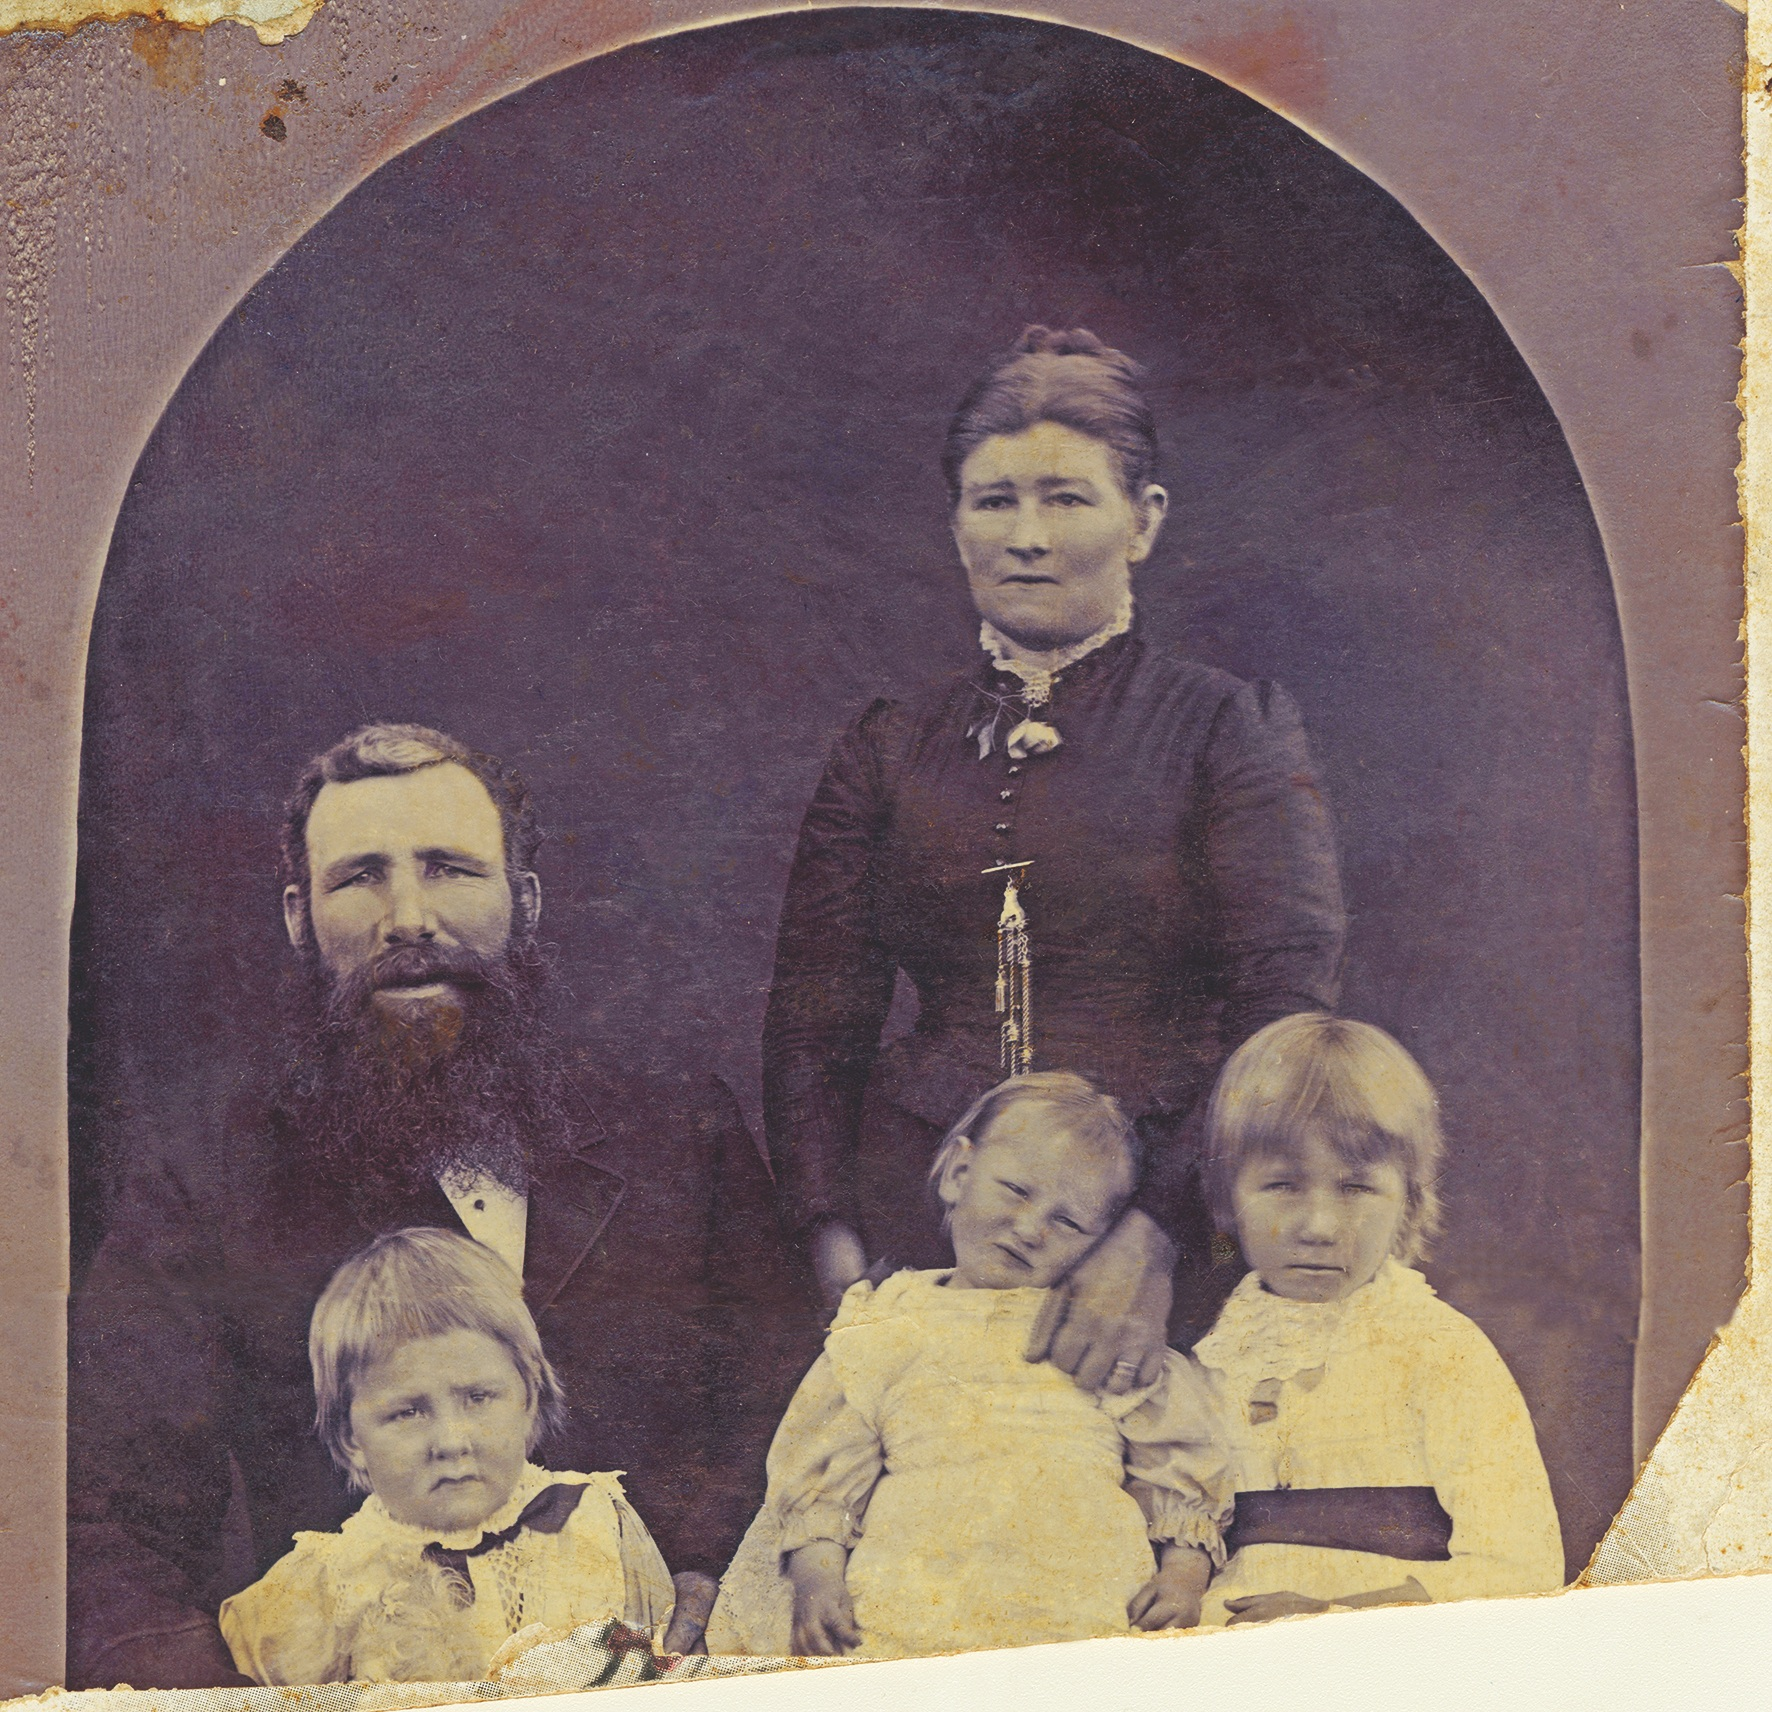 Photo from 1895 after retouching, digital copy can be shared with family members easily.